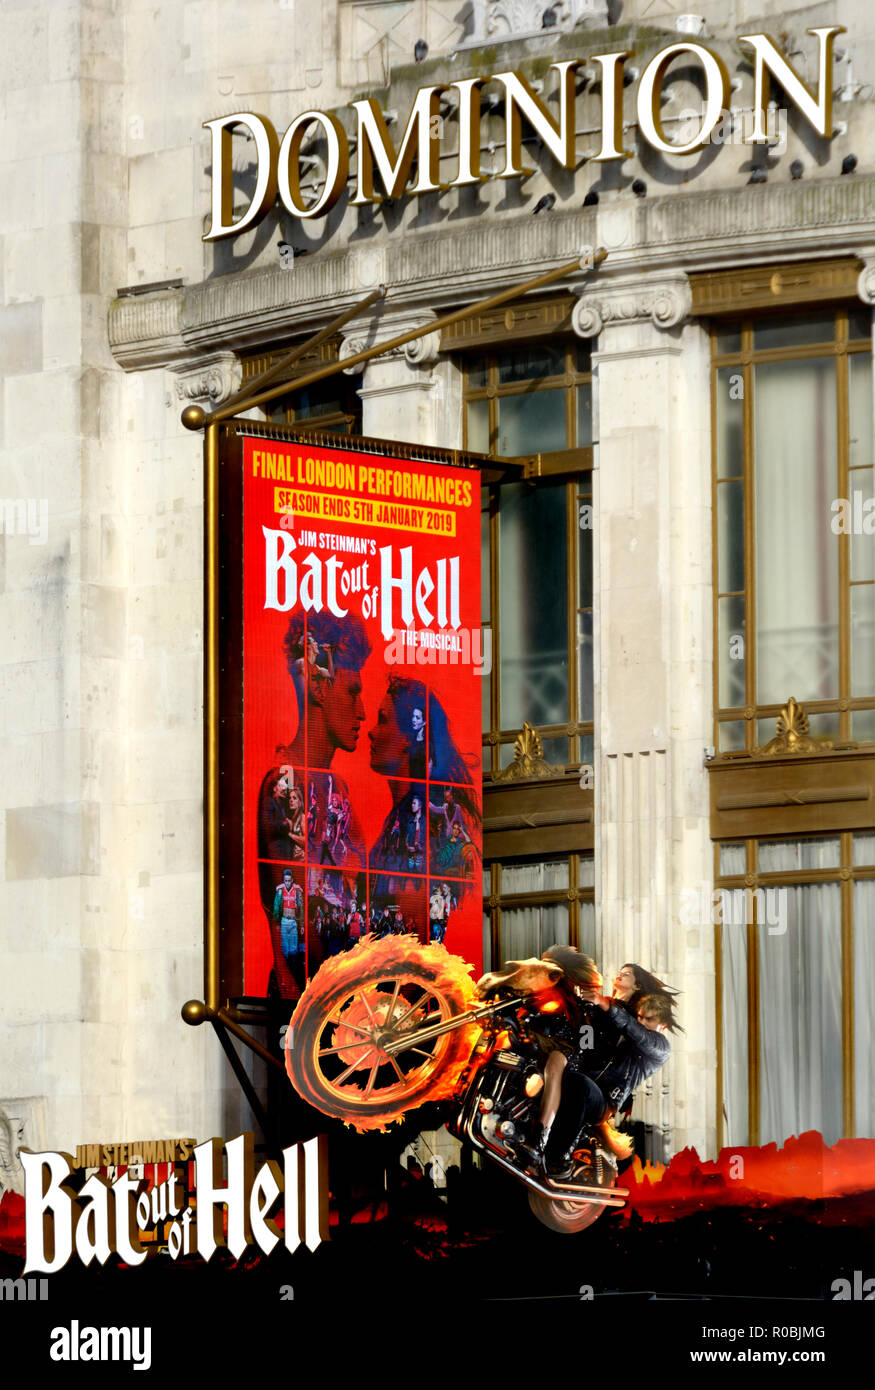 Bat out of Hell (Meatloaf) at the Dominion Theatre, London, England, UK. November 2018 - Stock Image